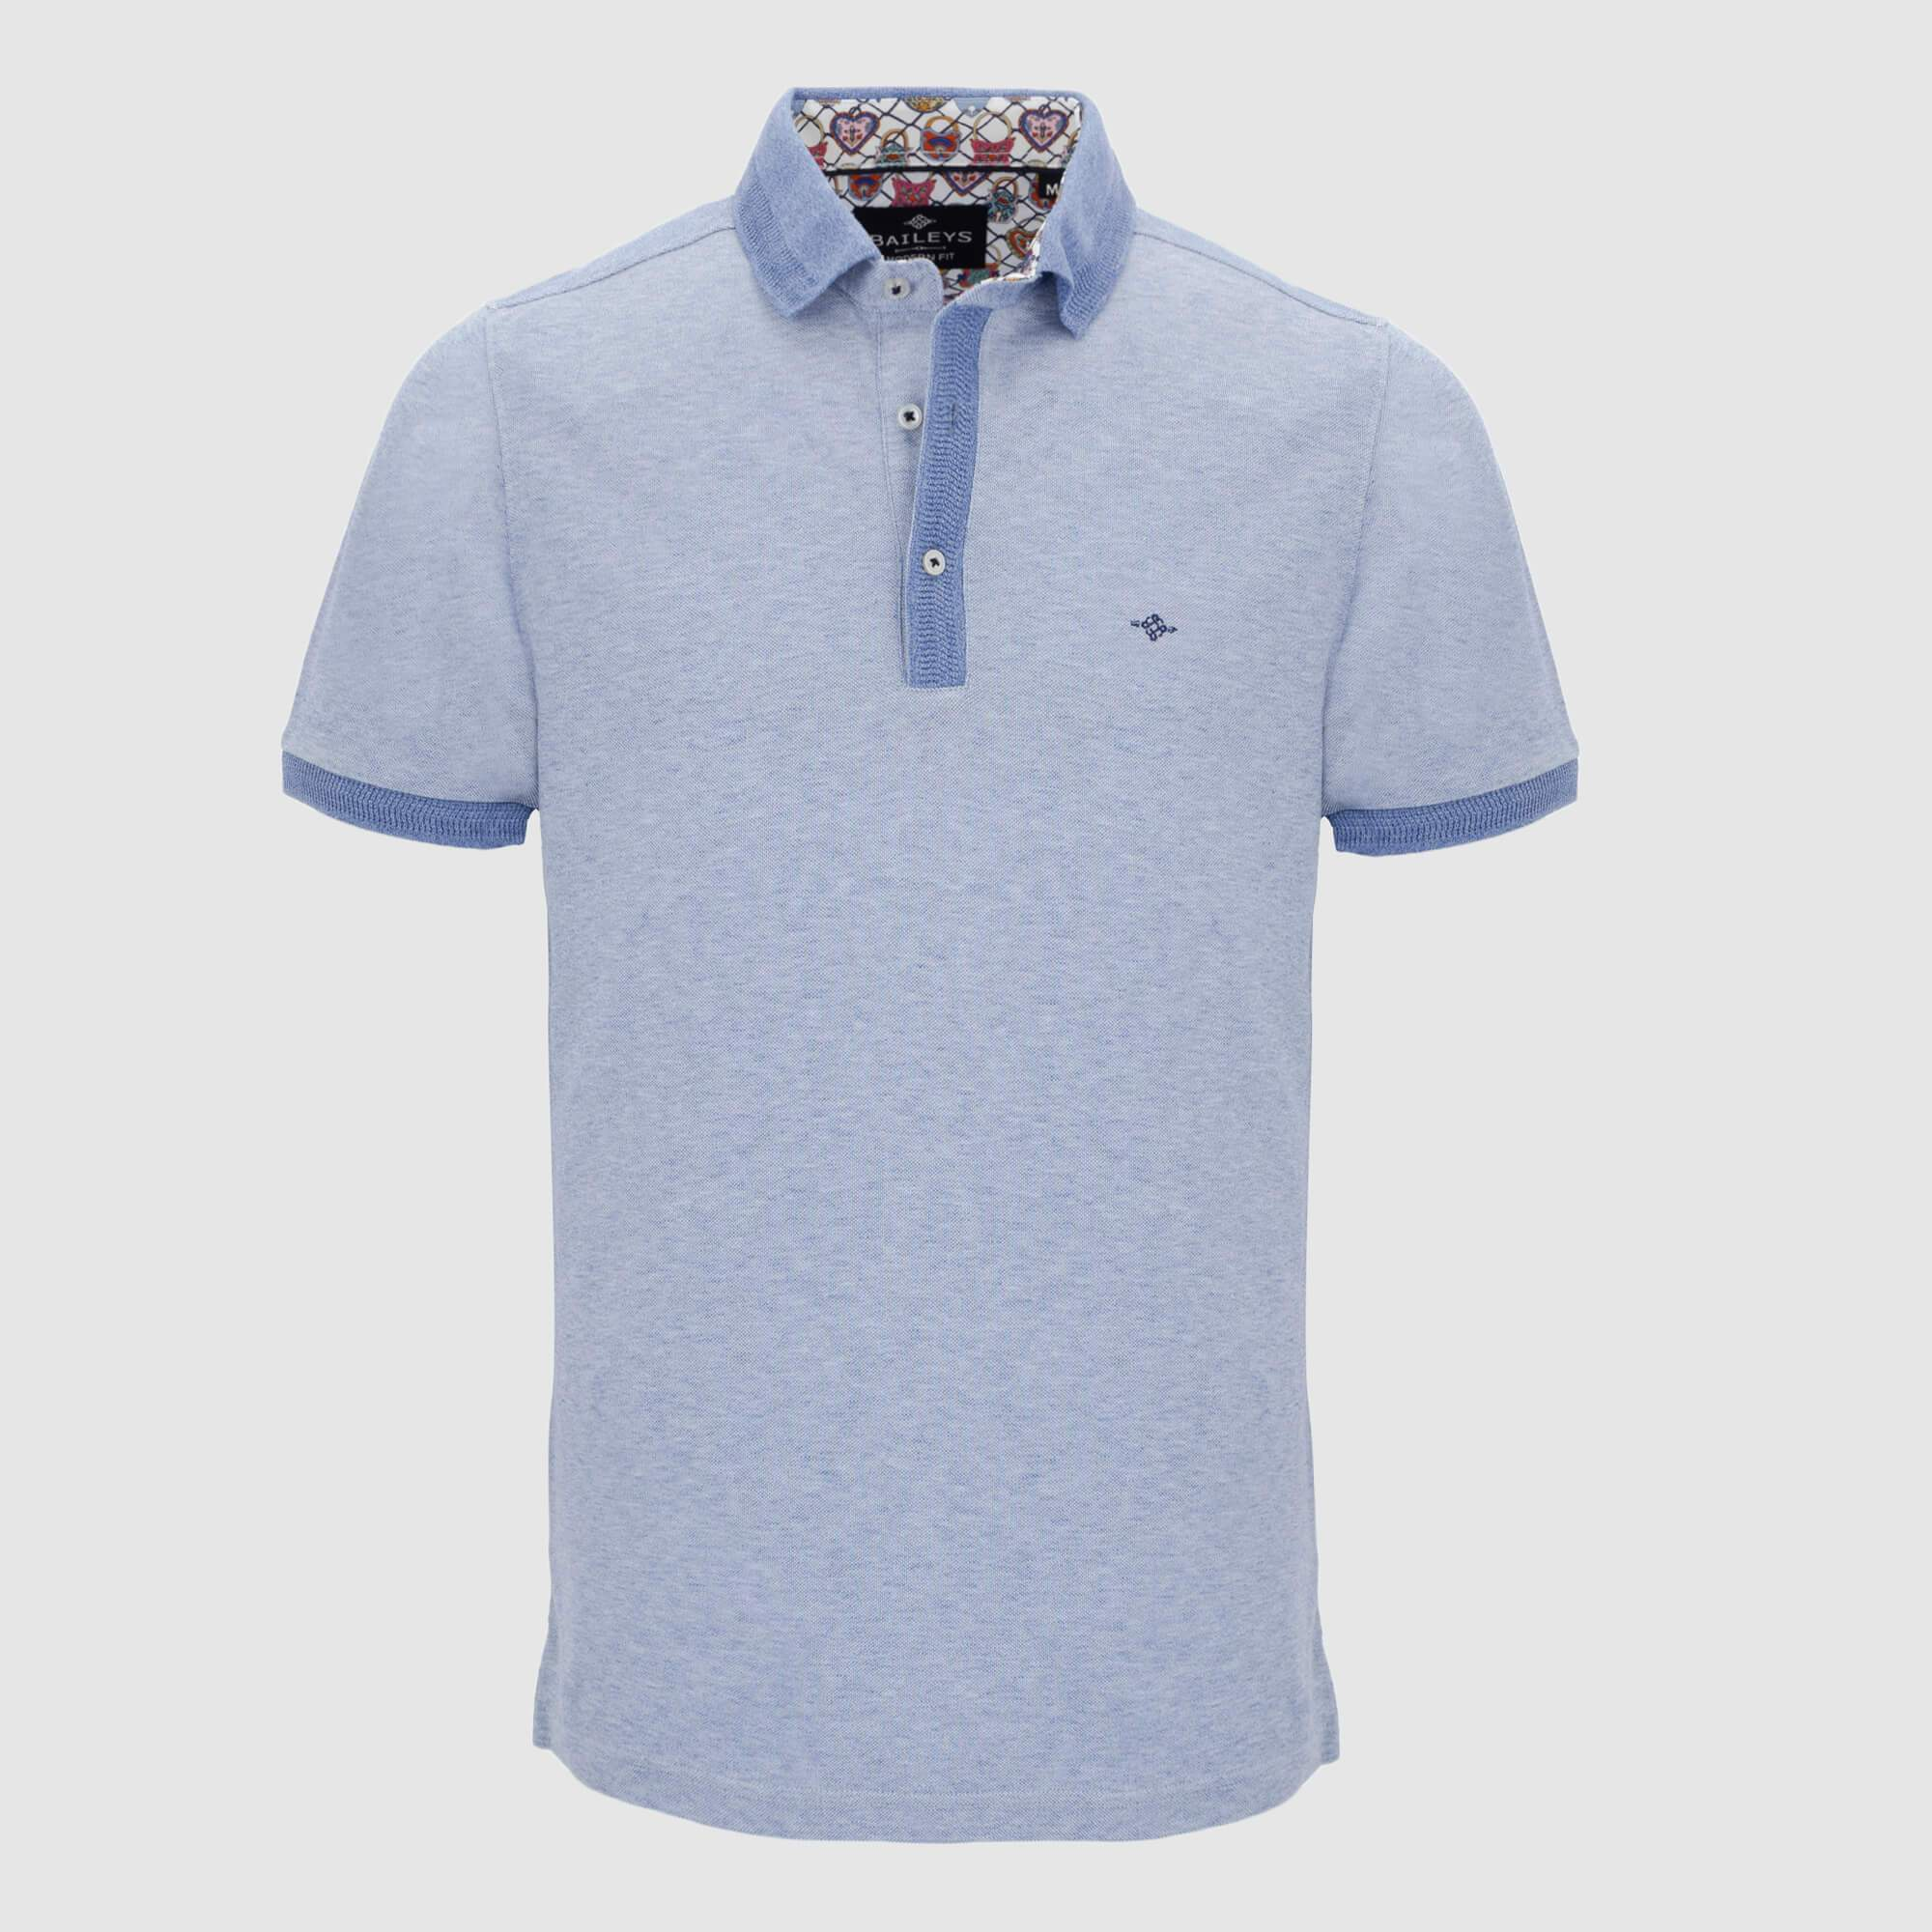 Polo jaspeado slim fit 106591